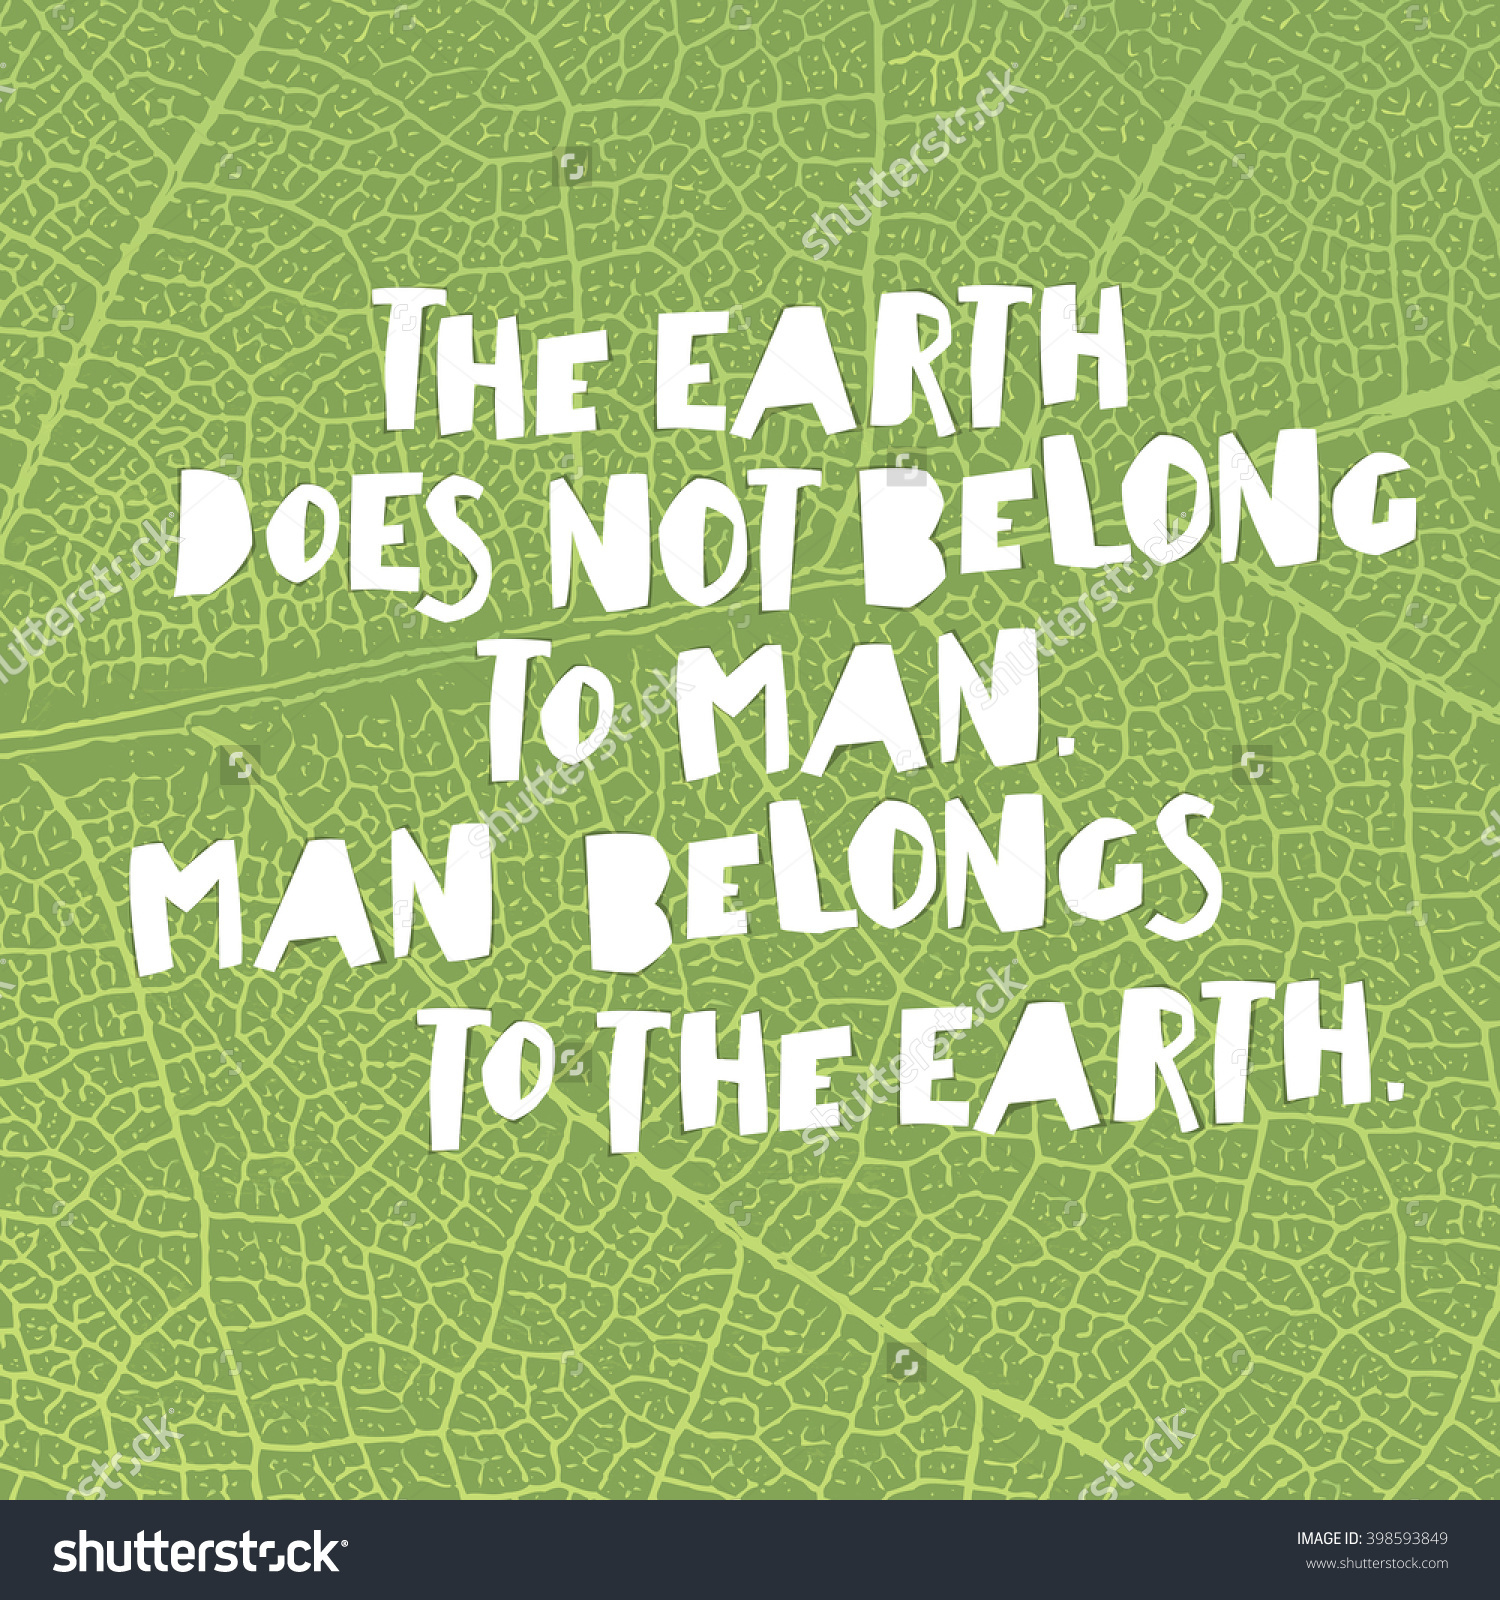 Earth Day Quotes Earth does not belong to man belongs to the earth